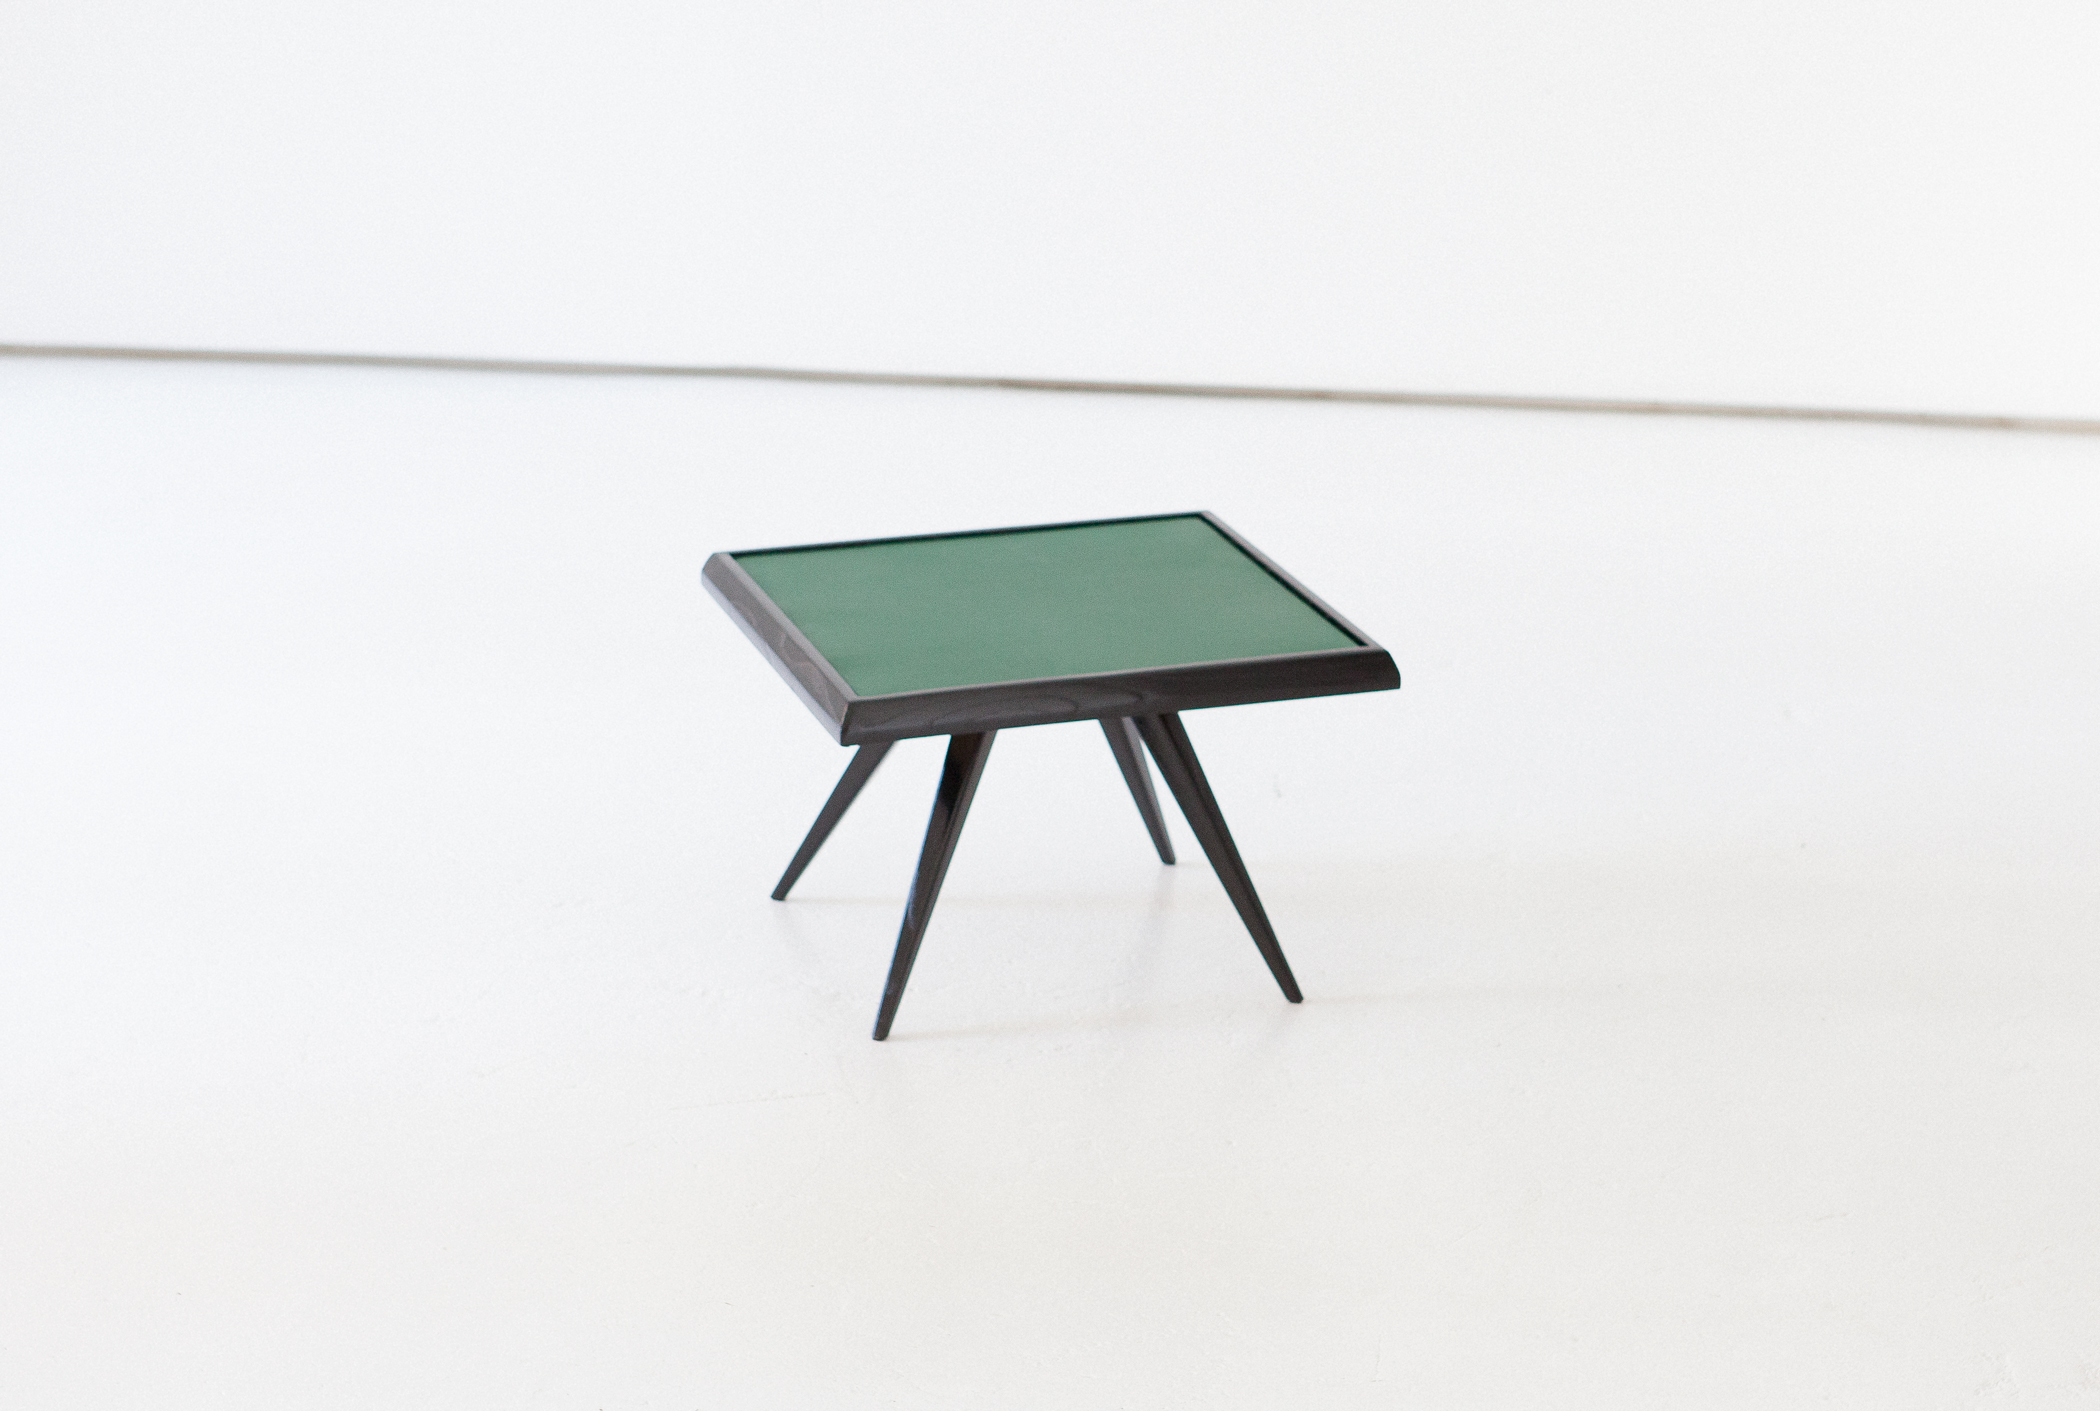 table-75.2